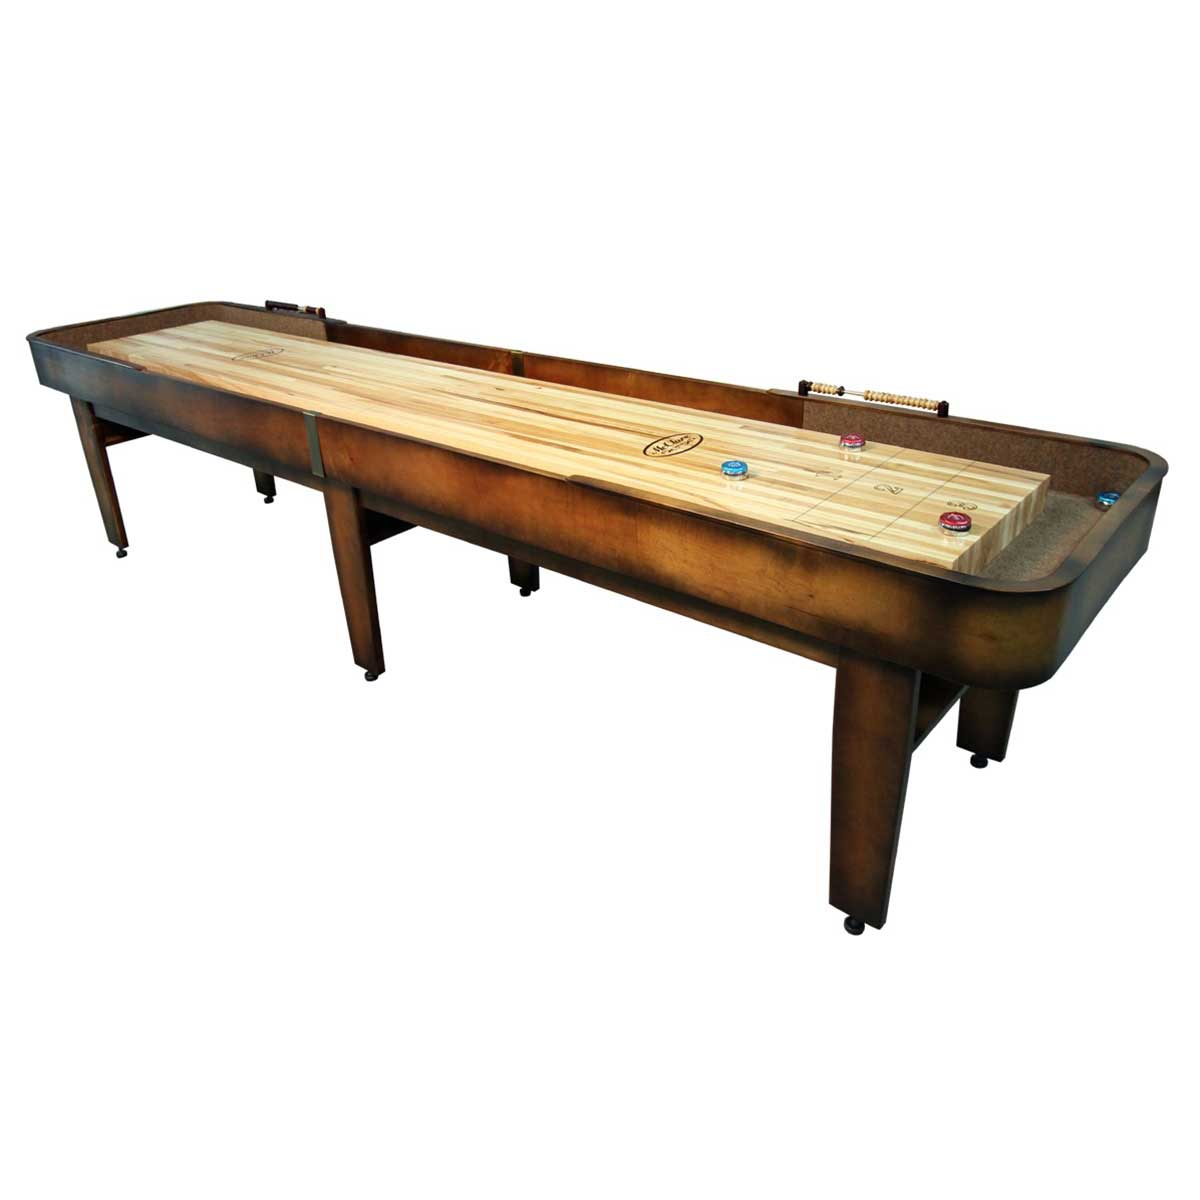 14 Foot Tournament II Shuffleboard Table